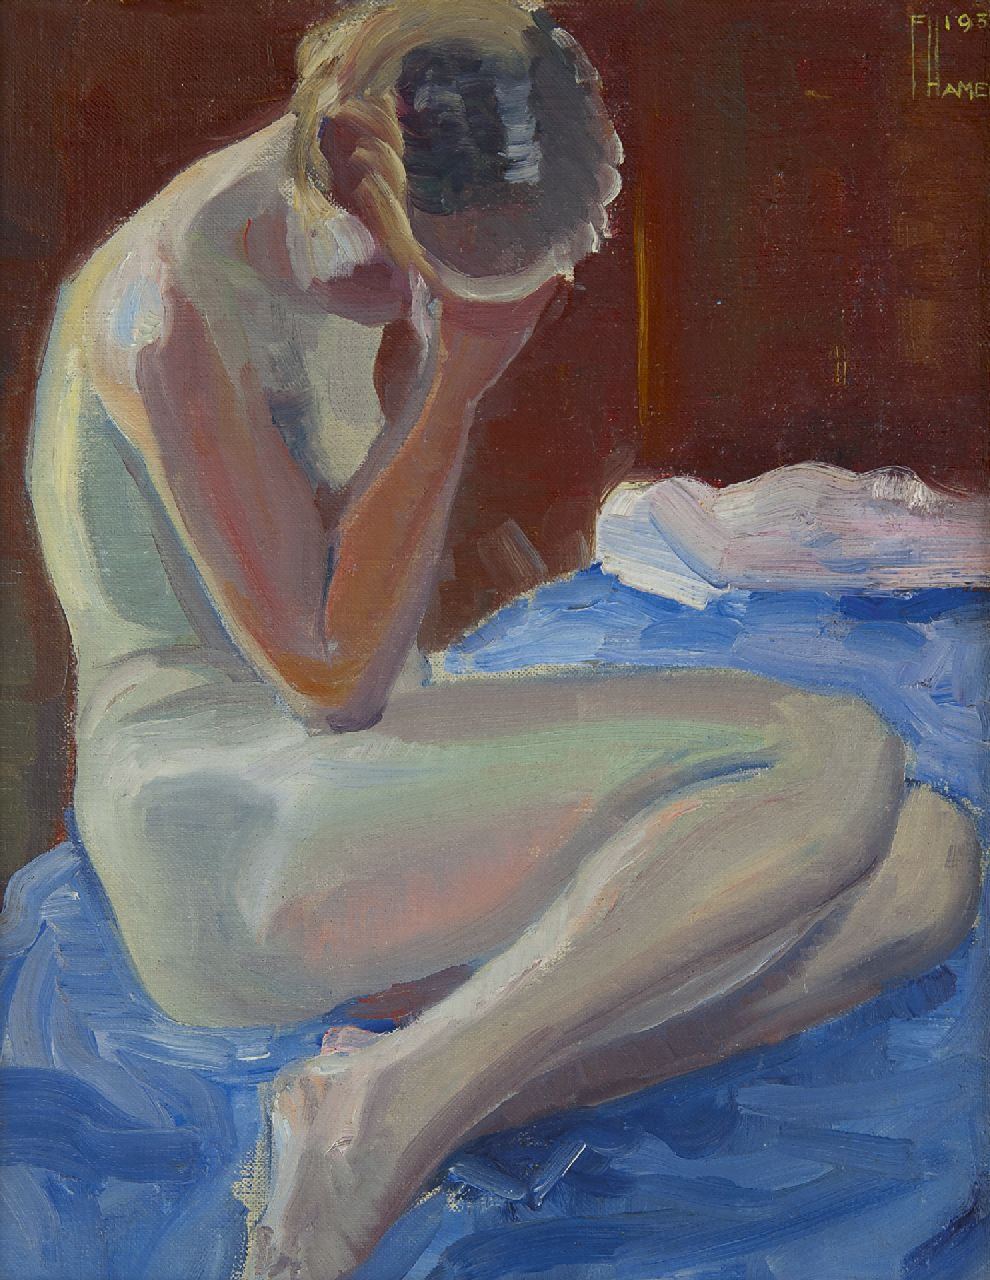 Vivian reed oil painting on canvas of seated nude woman